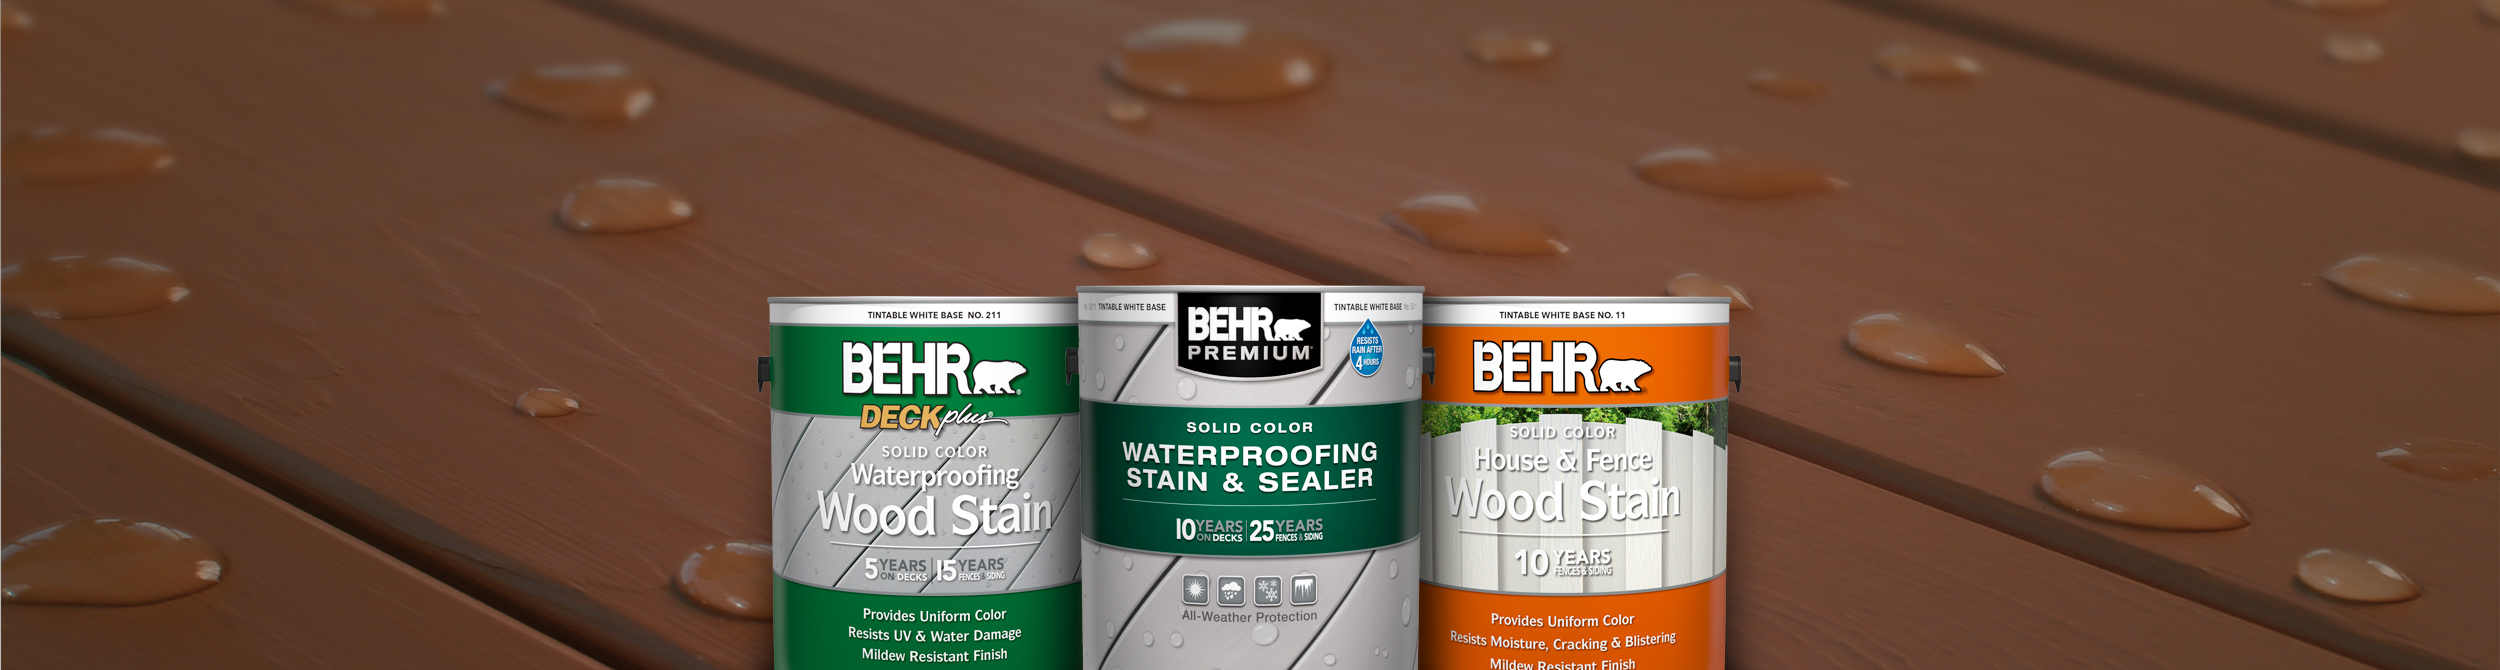 3 cans of Behr Stain products against a deck background.